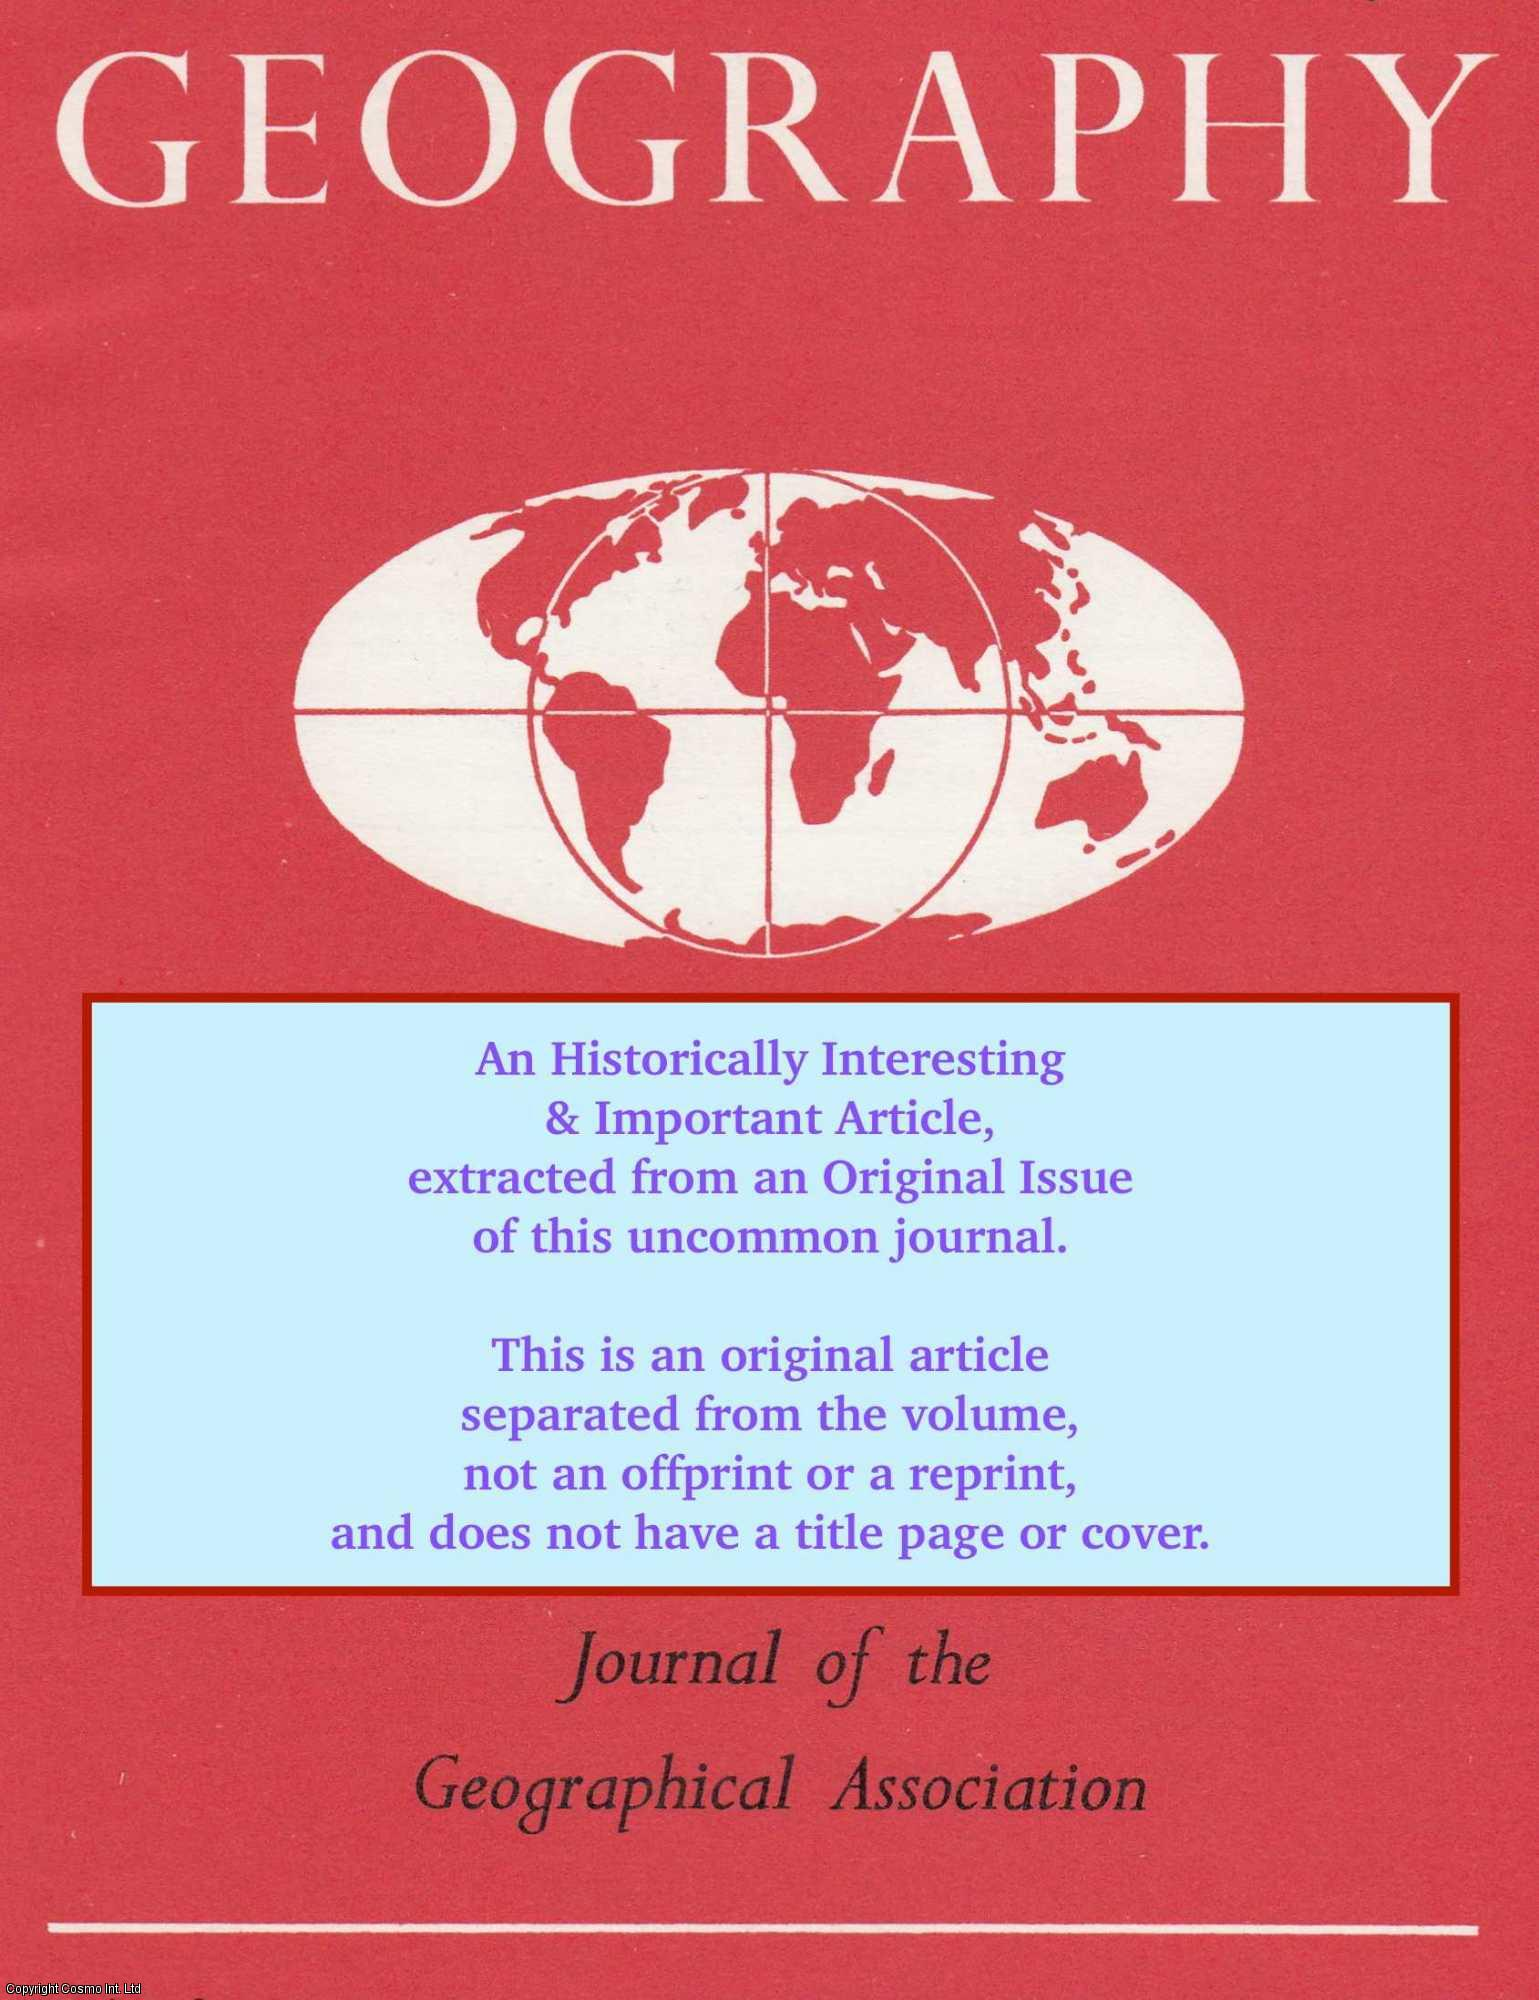 BAILEY, P. J. M. - The Organization and Management of Geography Departments in Comprehensive Schools. An original article from The Journal of The Geographical Association, 1972.